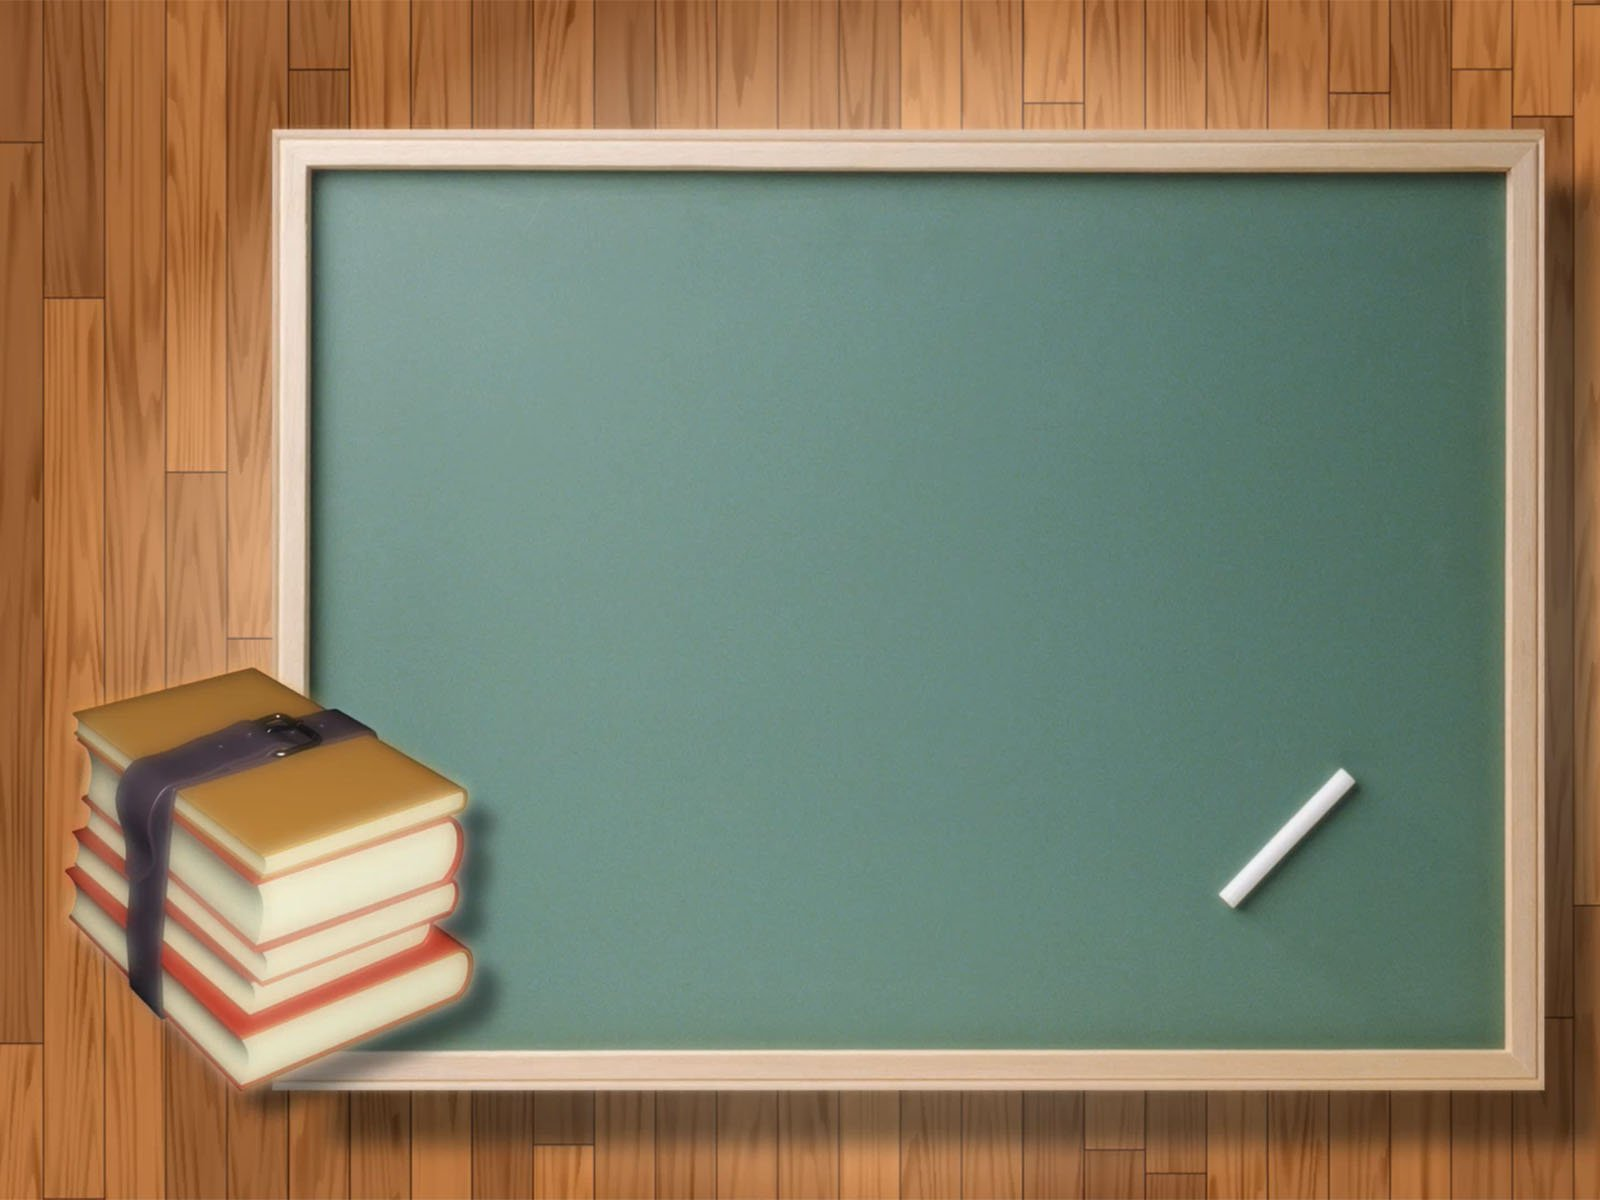 """PPT Backgrounds on Twitter """"Books and Black Board Backgrounds for Templates backgrounds"""